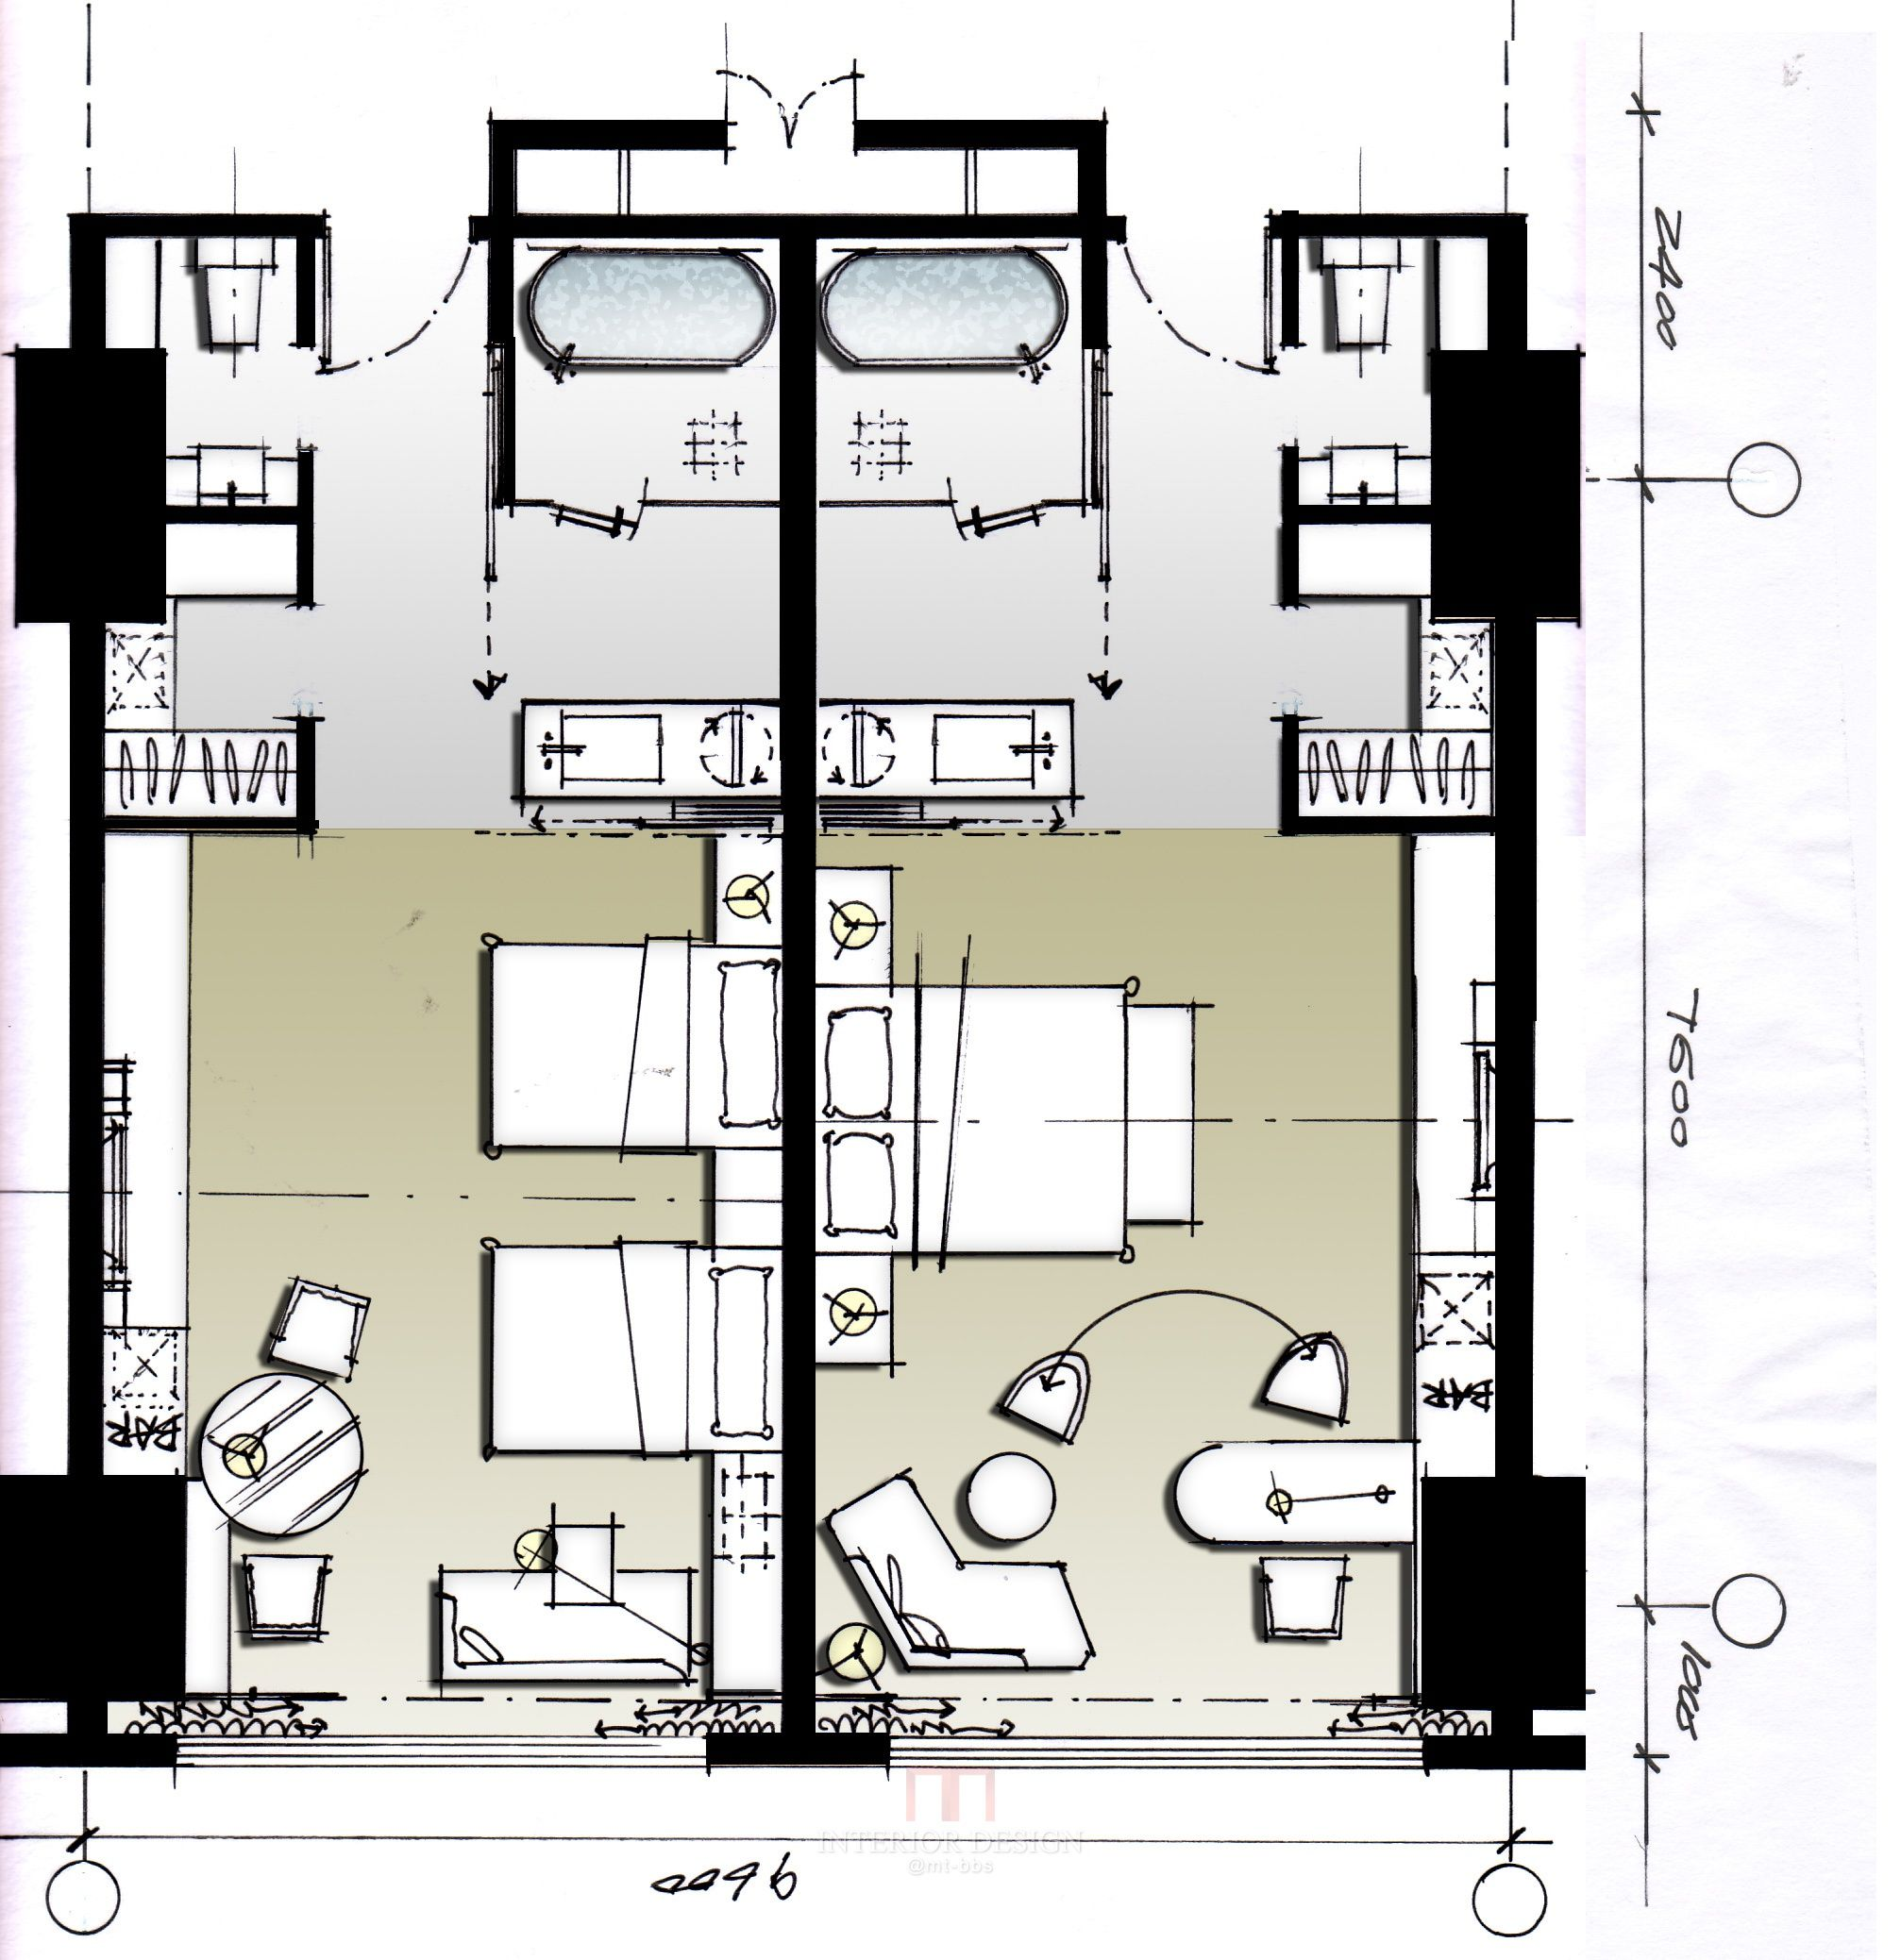 Bedroom Floor Layout Https Pinterest Keziakarin Hotel Resort